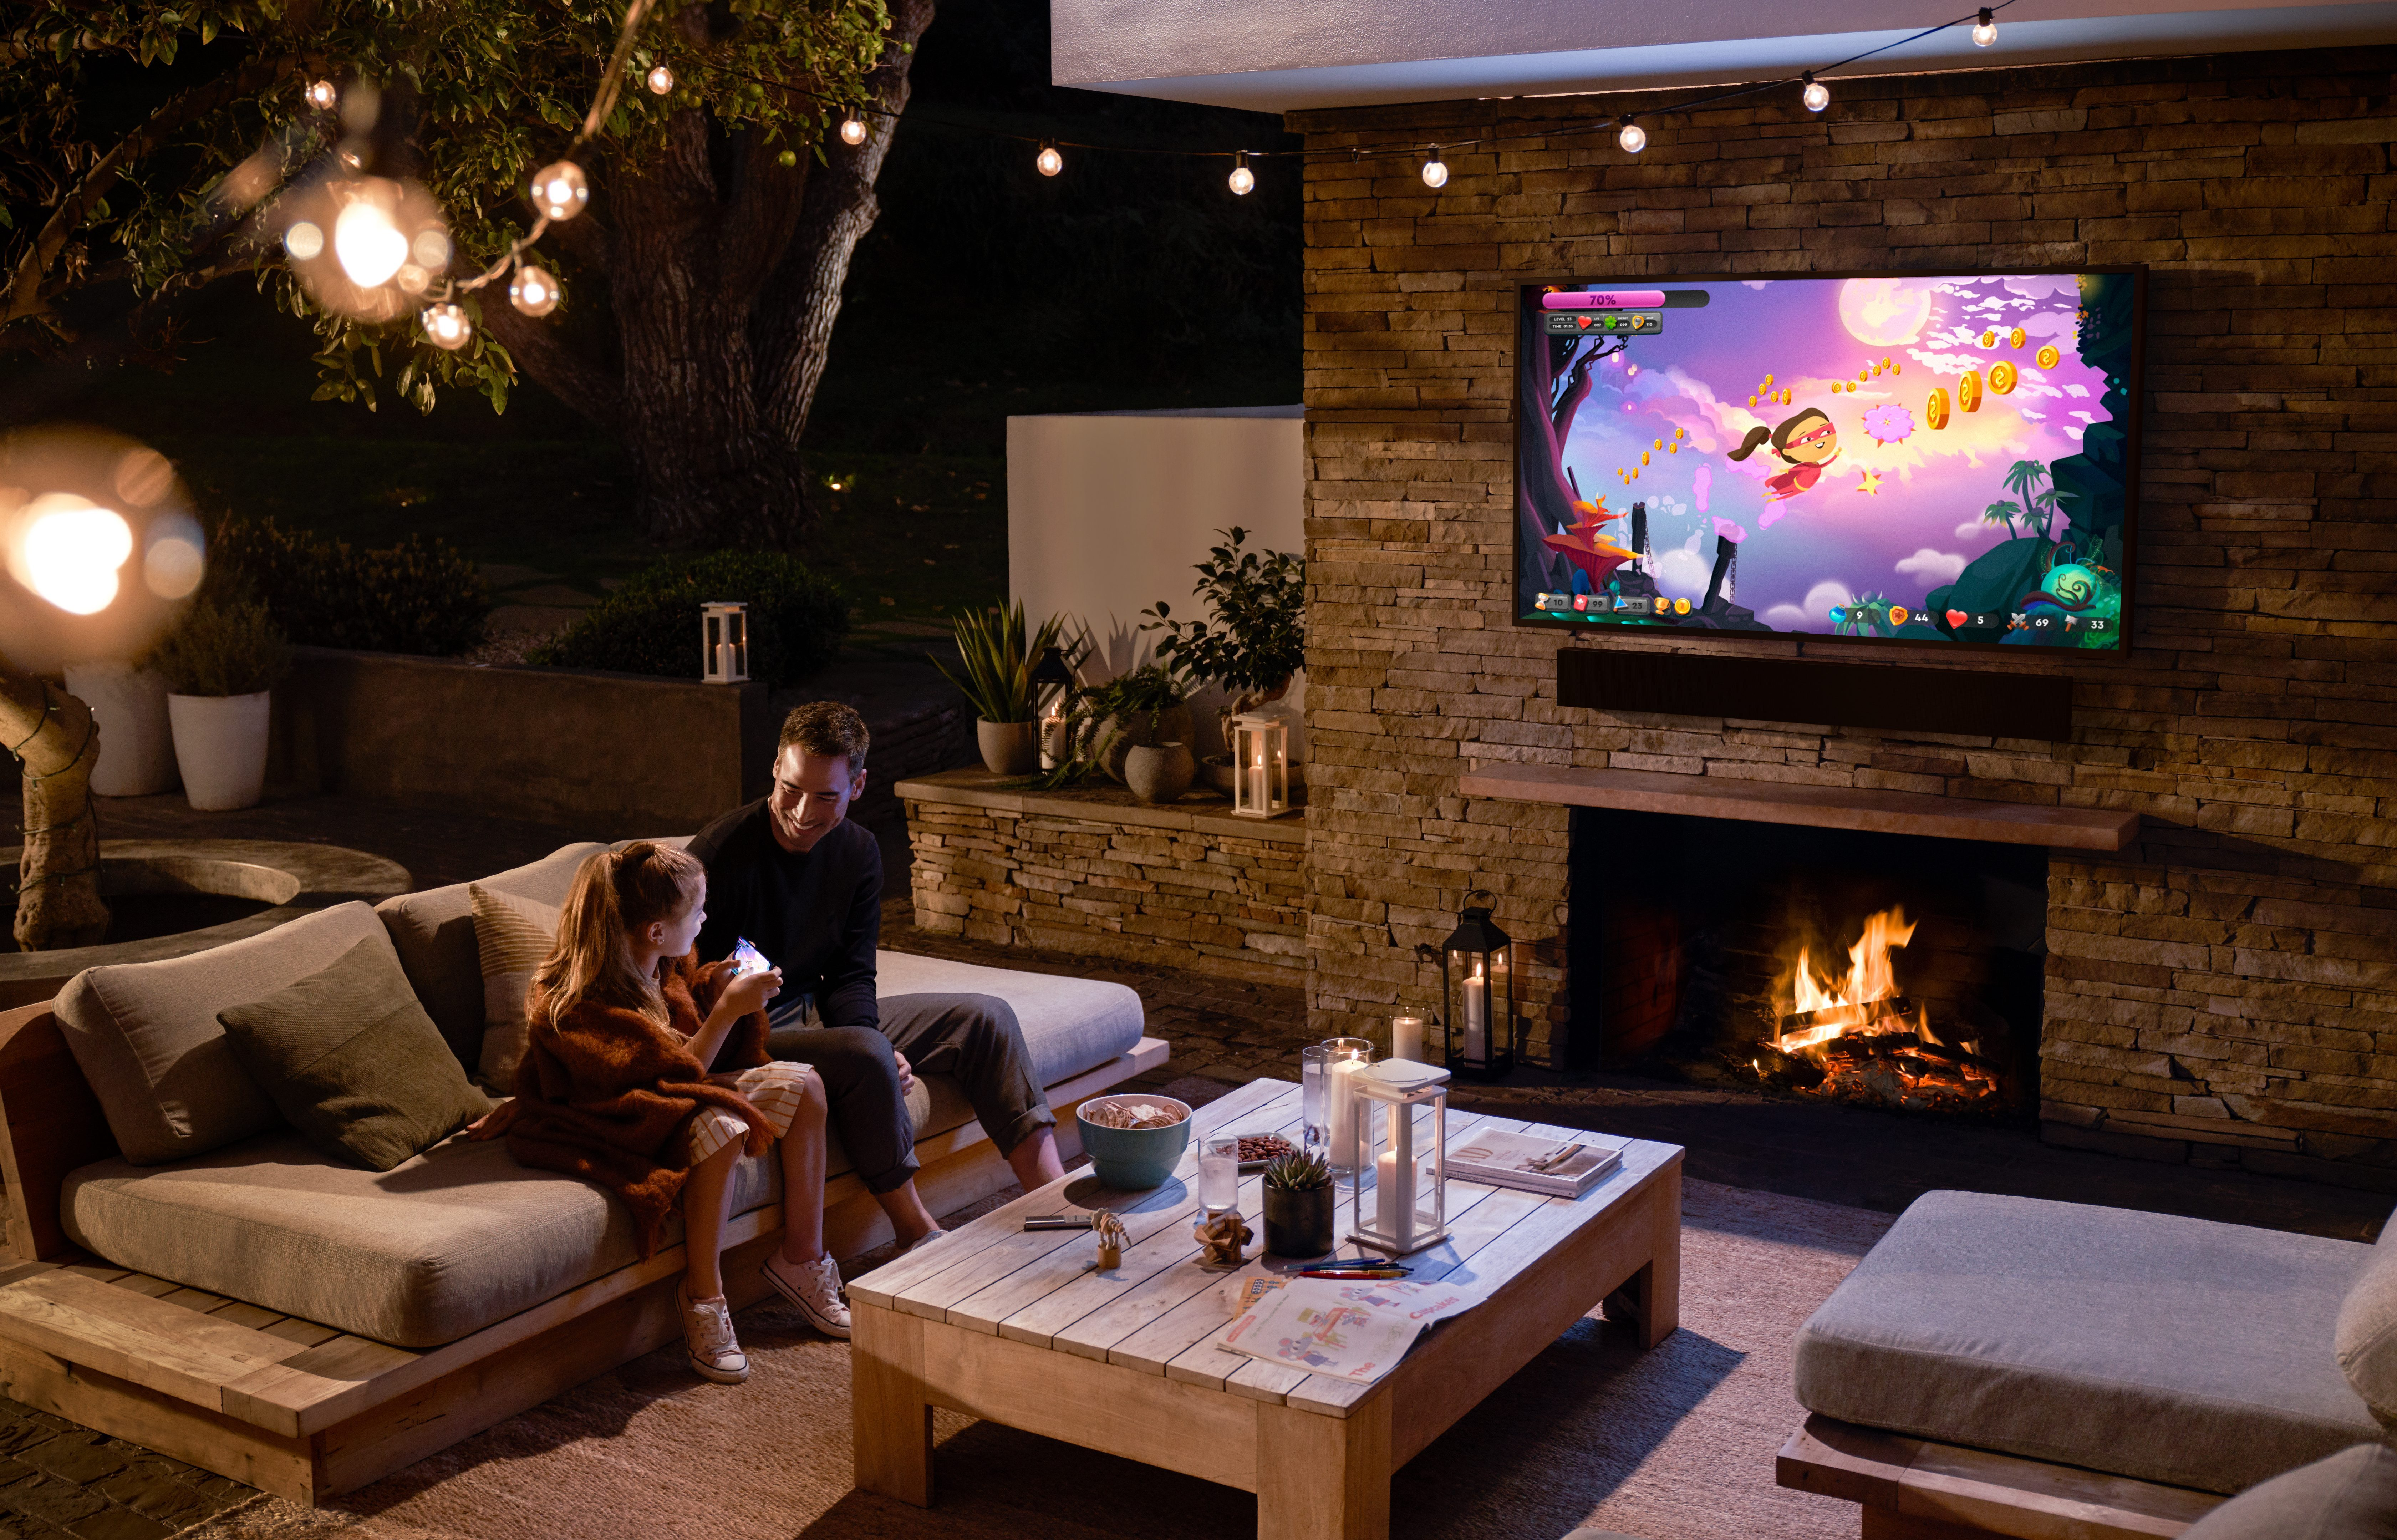 Shade or Sun, There's a Perfect Outdoor TV for Your Space